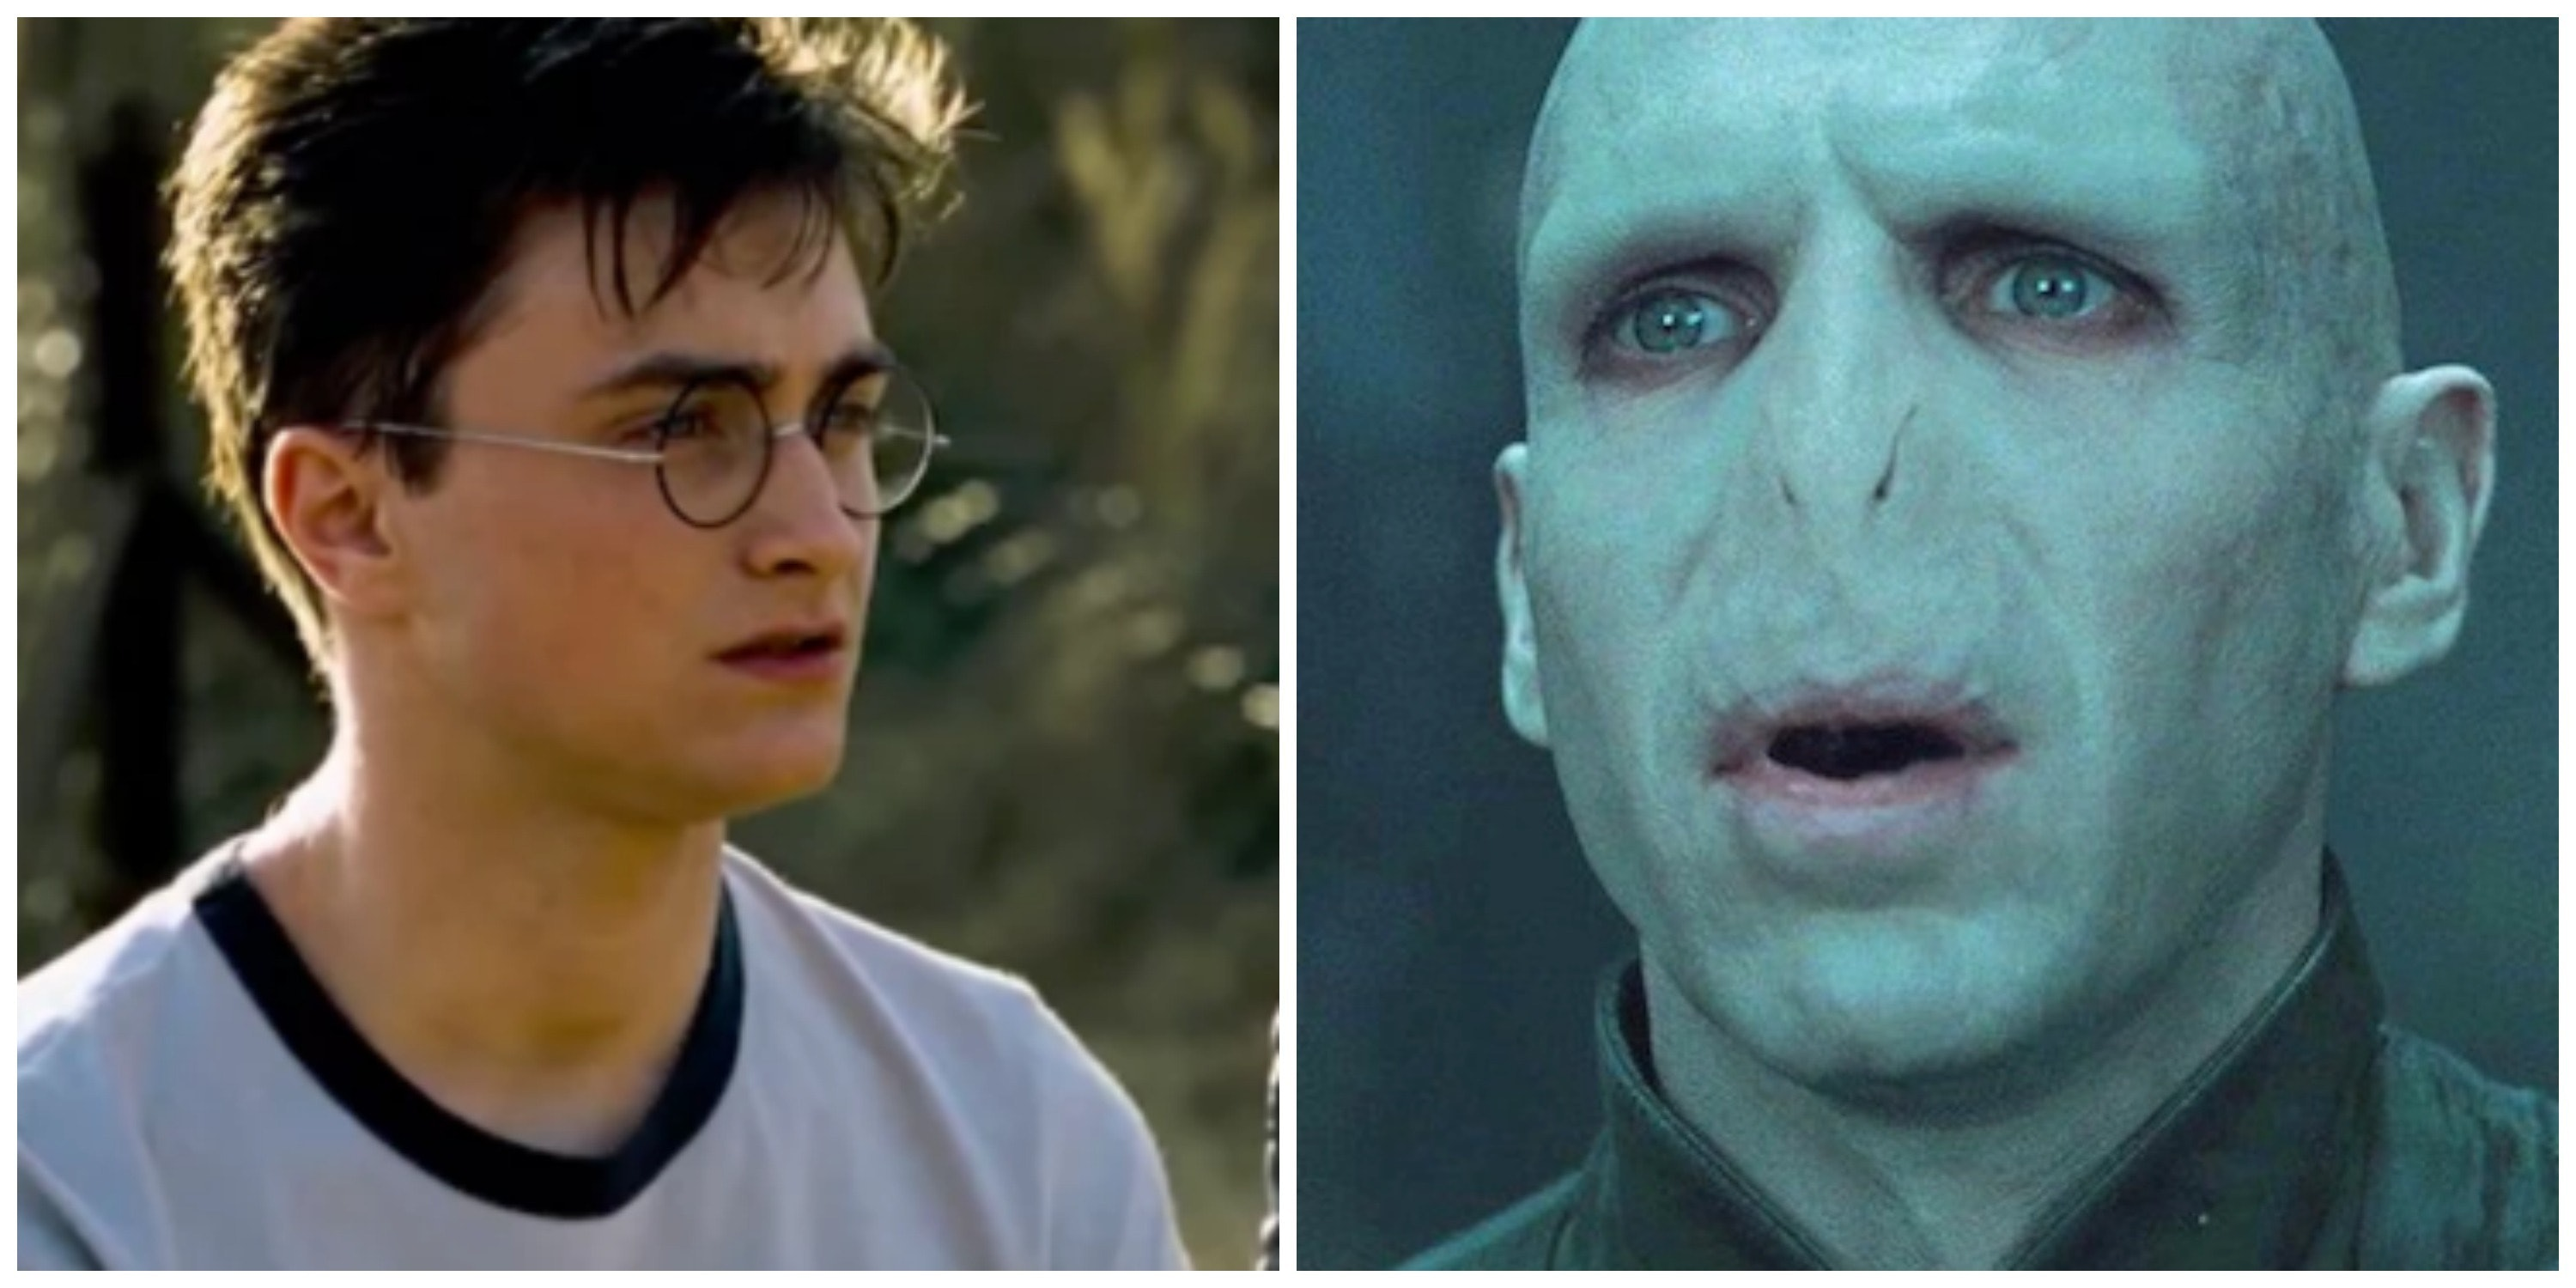 Harry Potter in love with Voldemort